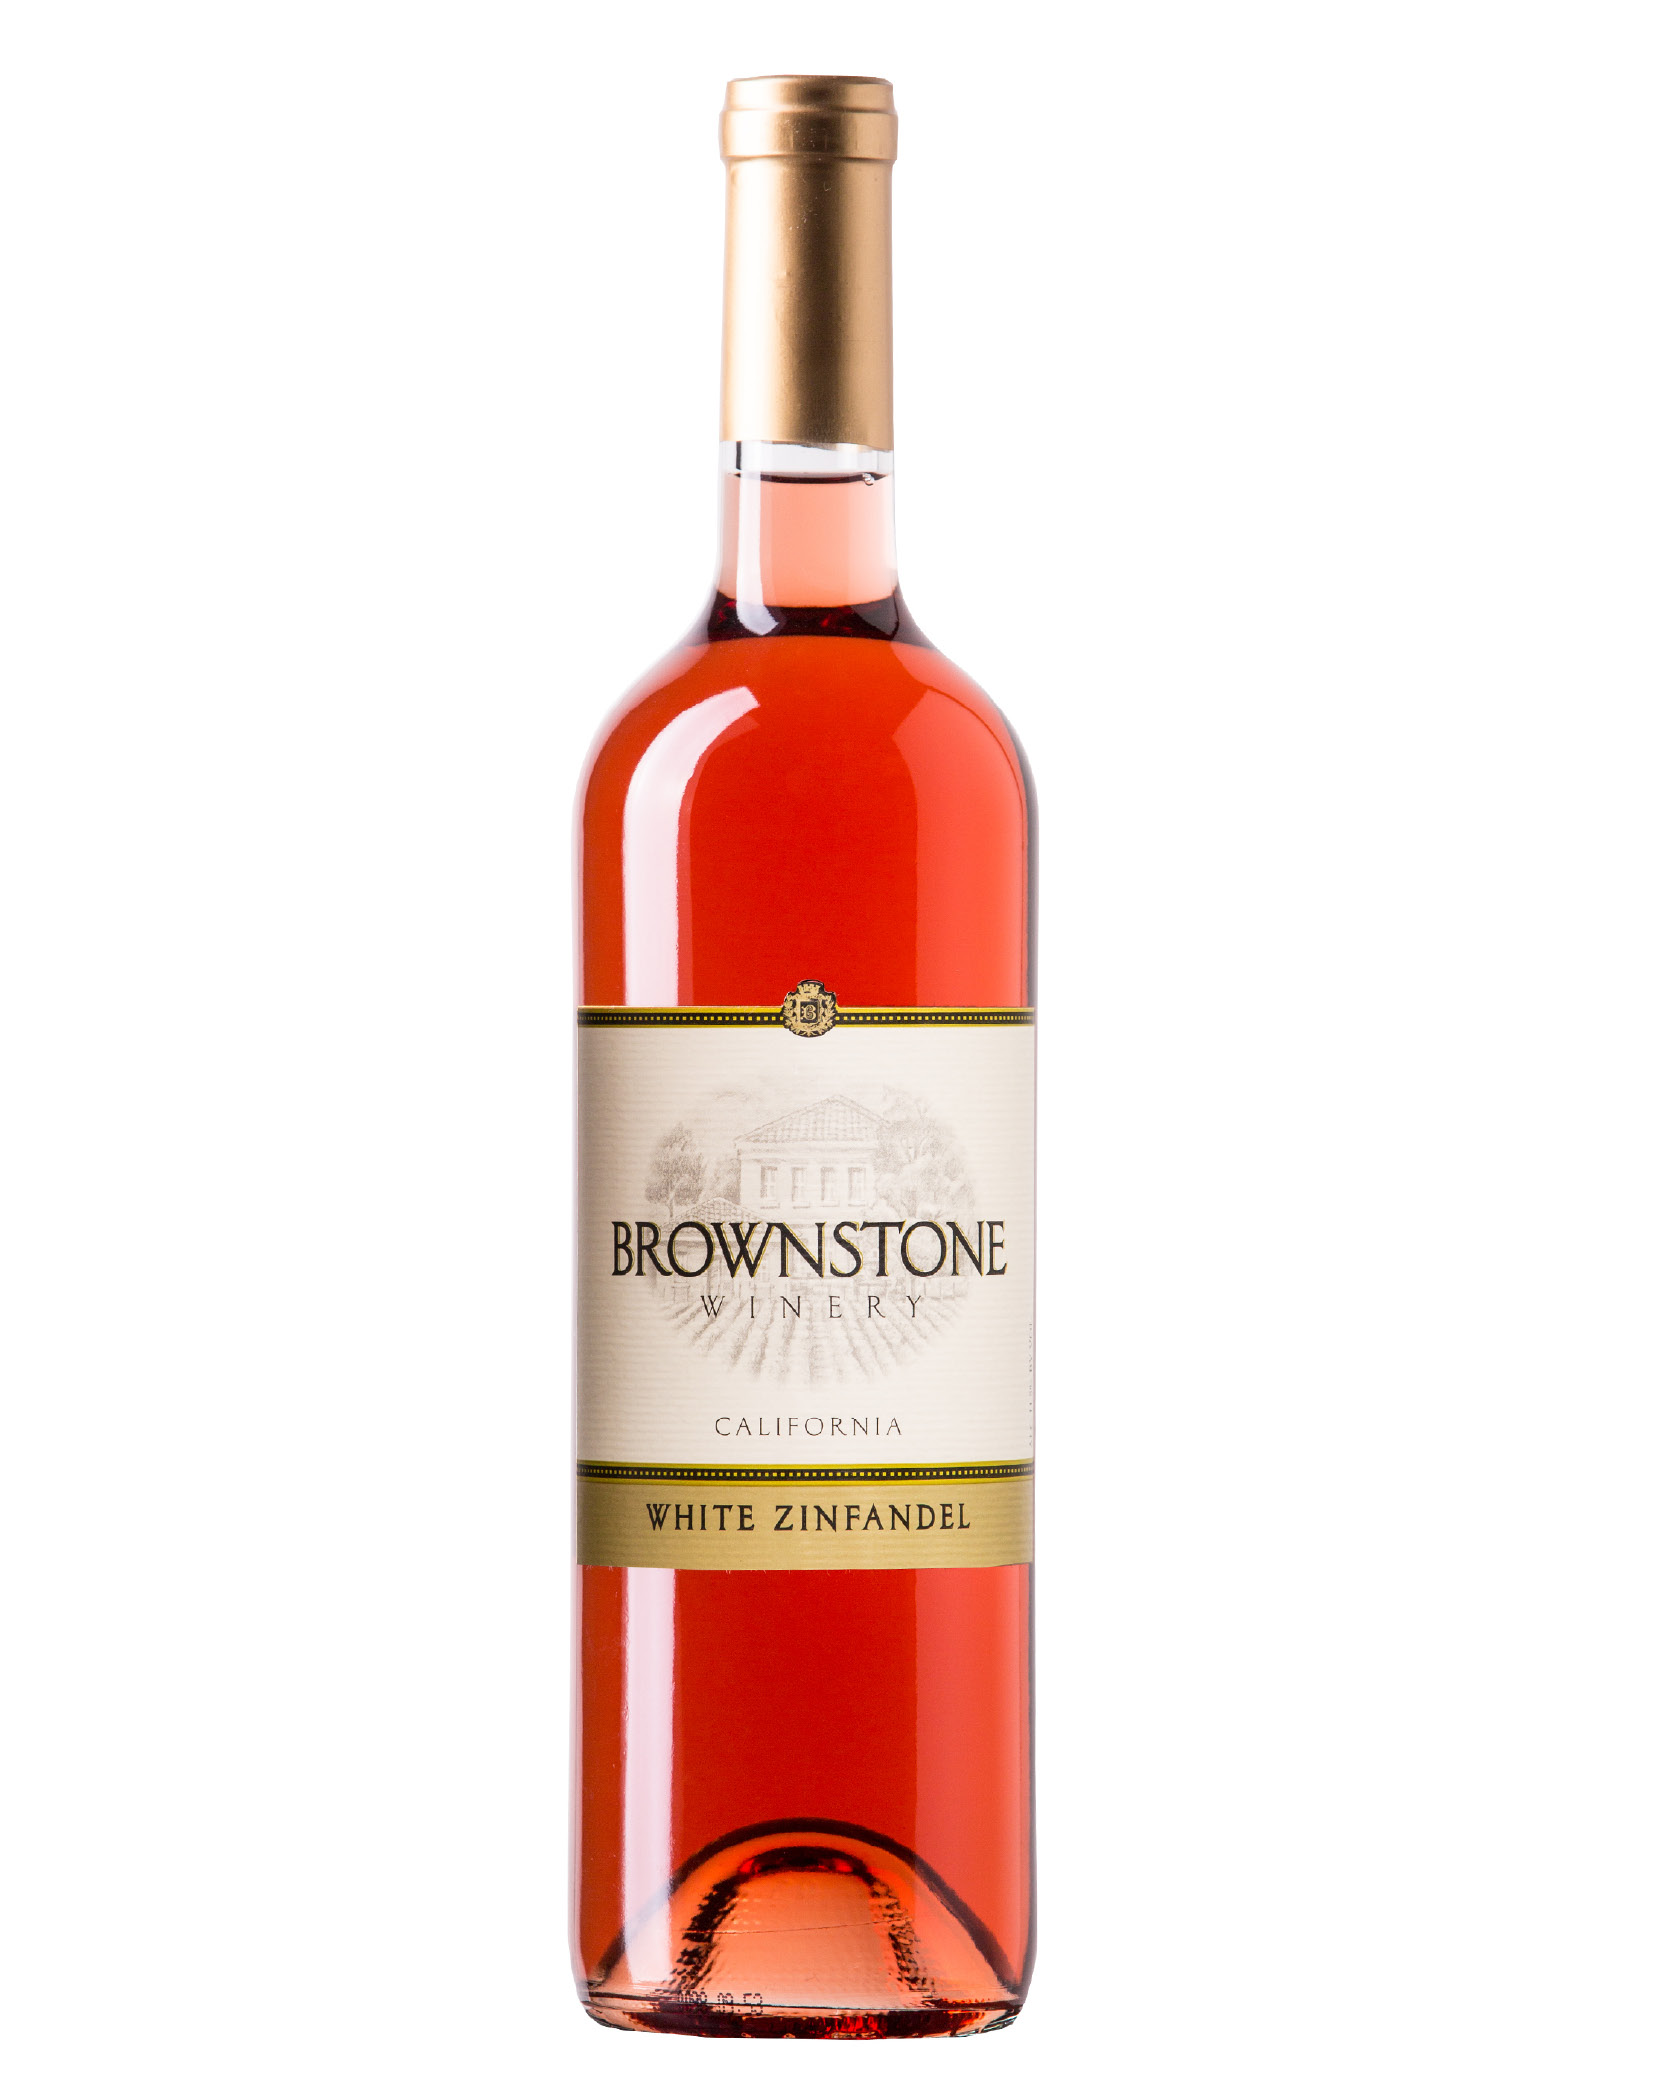 Brownstone White Zinfandel